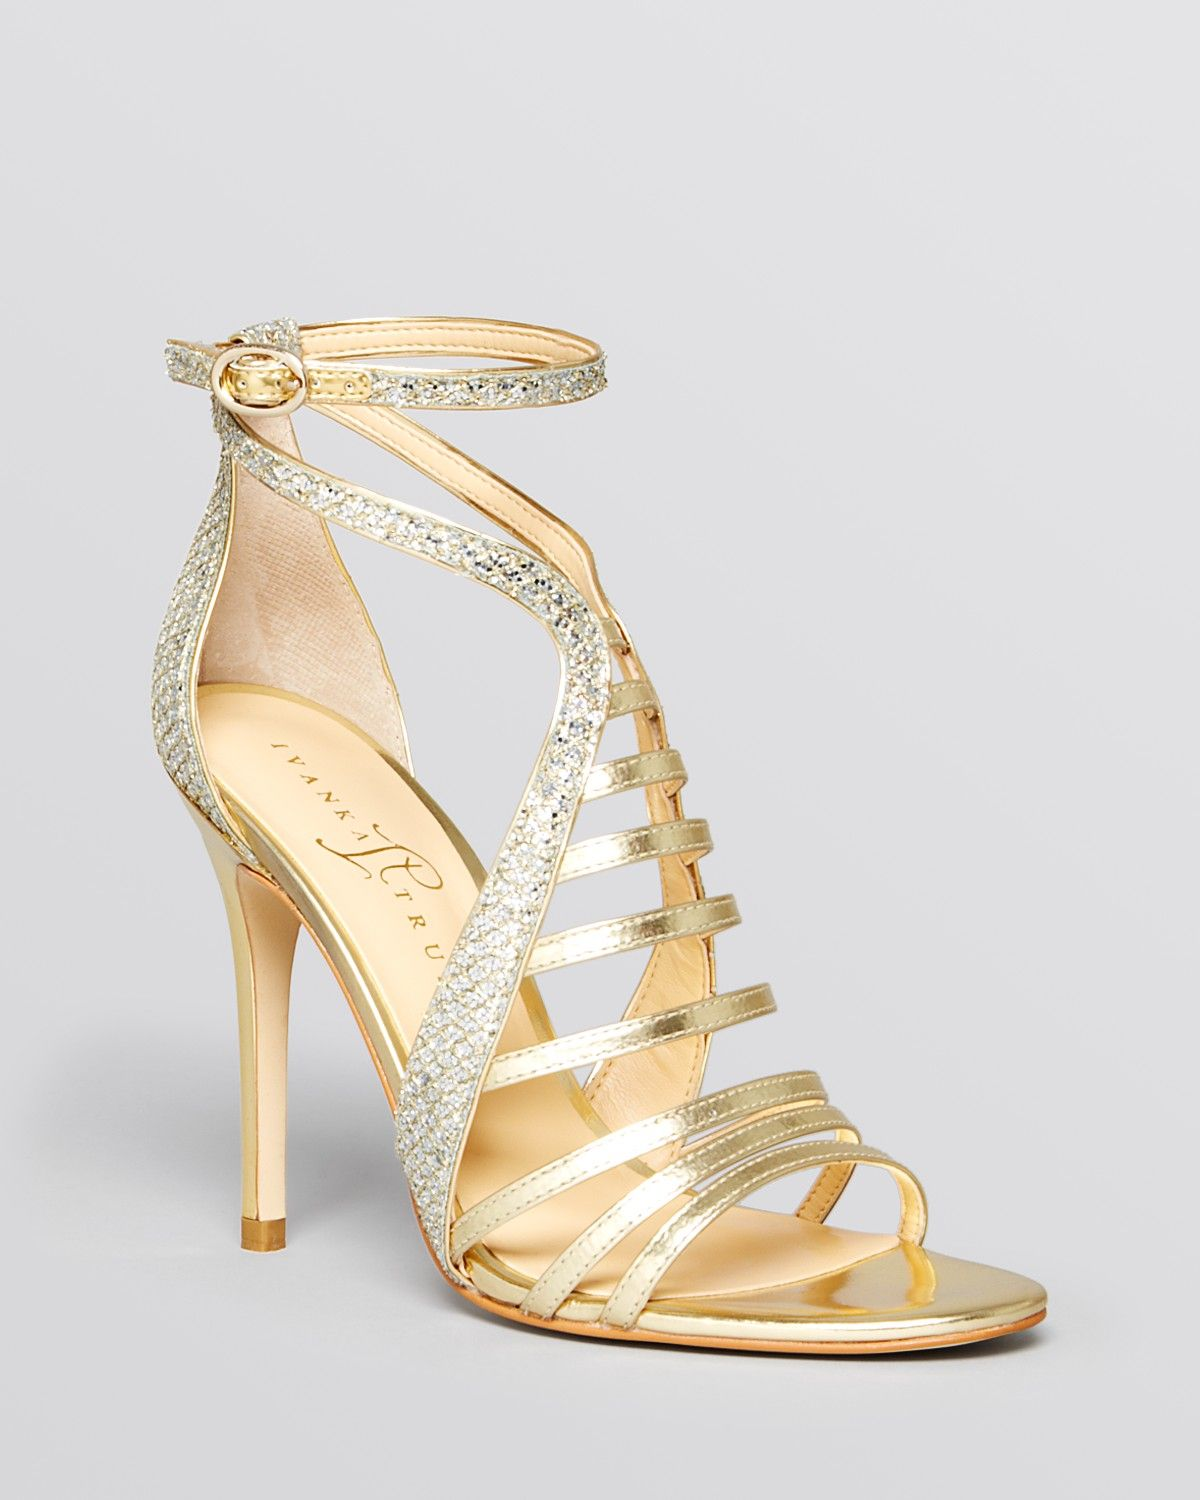 Shop for Open Toe Dress Sandals - Hayze 2 High Heel by Ivanka Trump at  ShopStyle.